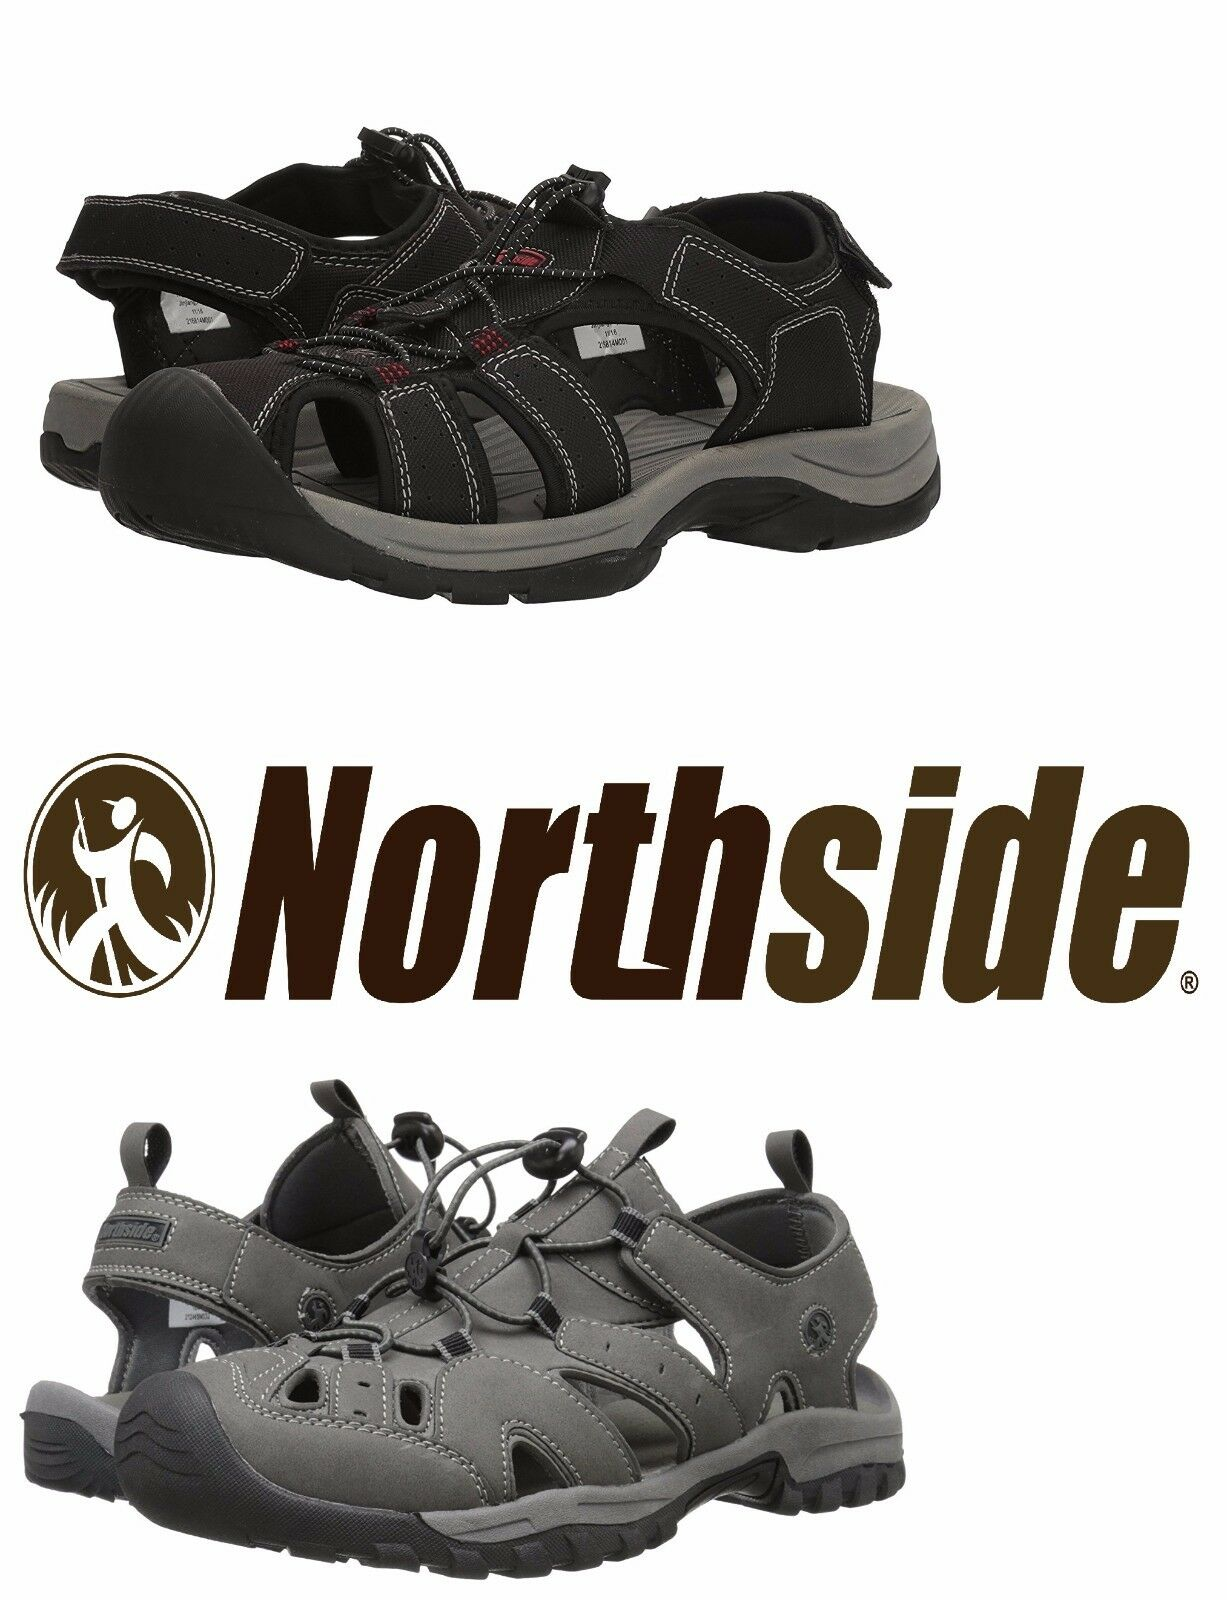 Northside Men's Sandals Burke II / Trinidad Water Sport Bung